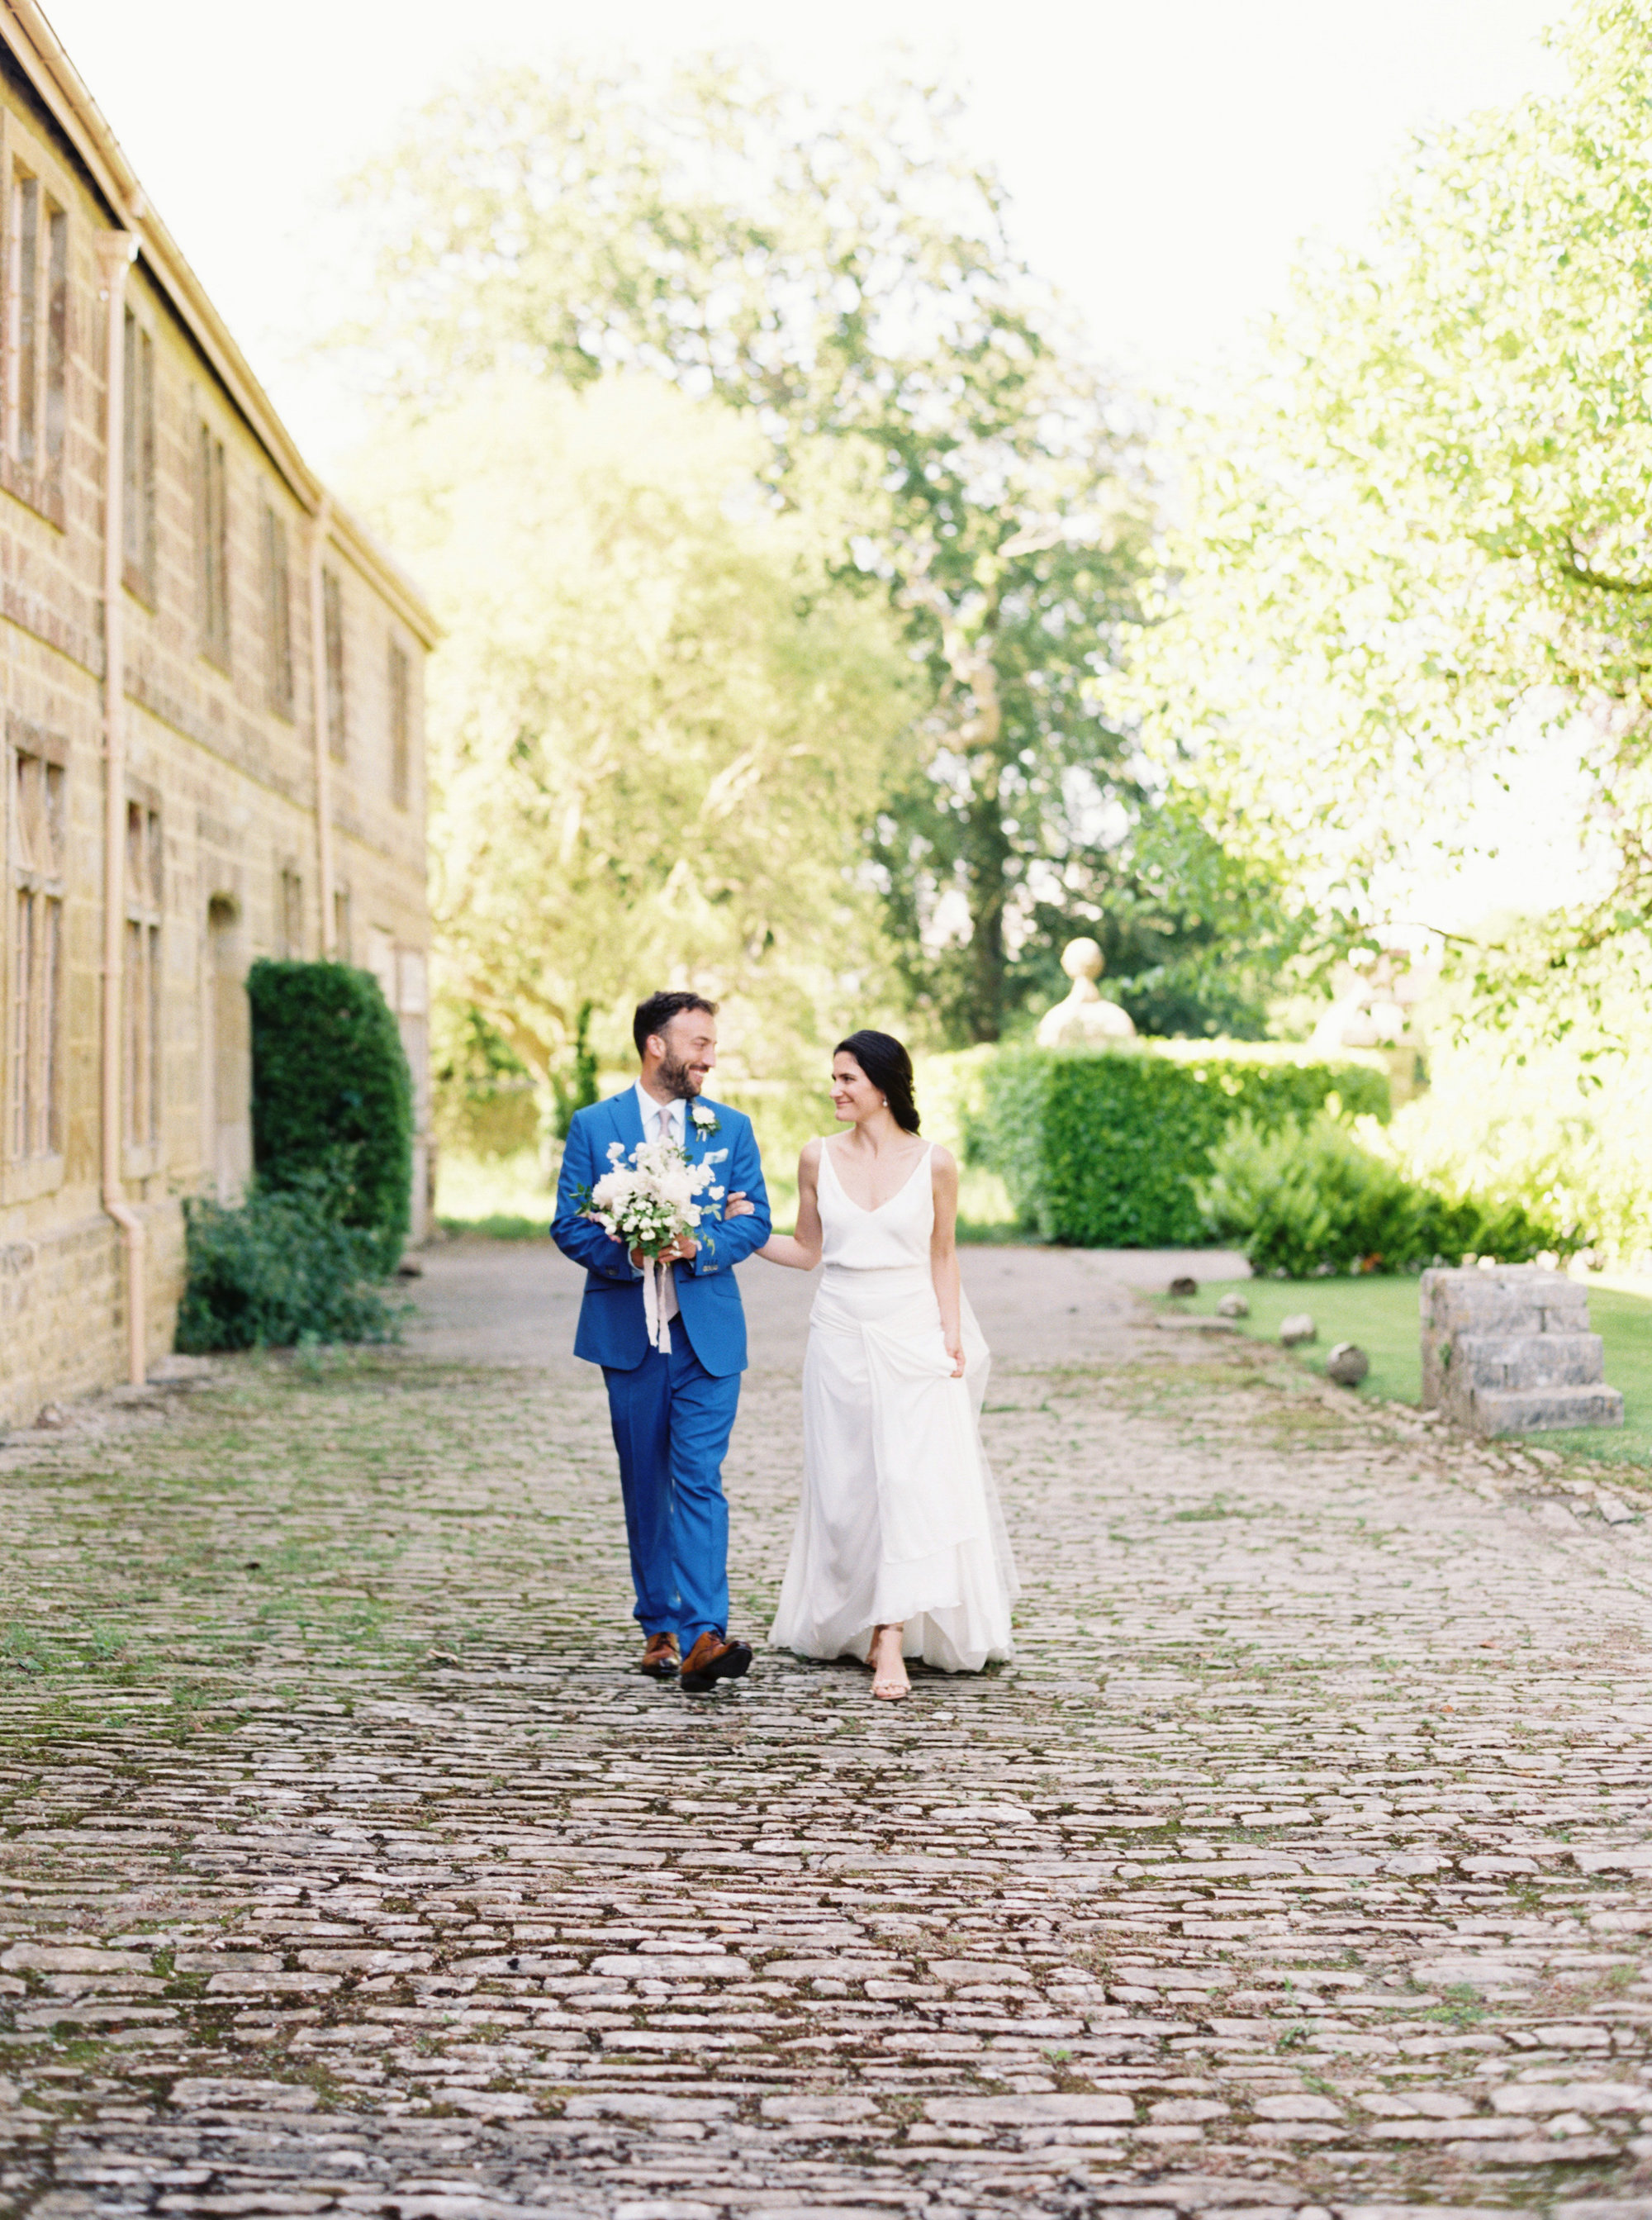 Luxury Wedding Planner UK | Jennifer & Timothy's English Country Manor Wedding | Soft Pink Pale Blue White and Silver Toned Green Neutral Tones American Bride North Cadbury Court | Nicole Colwell Photography  0037.jpg